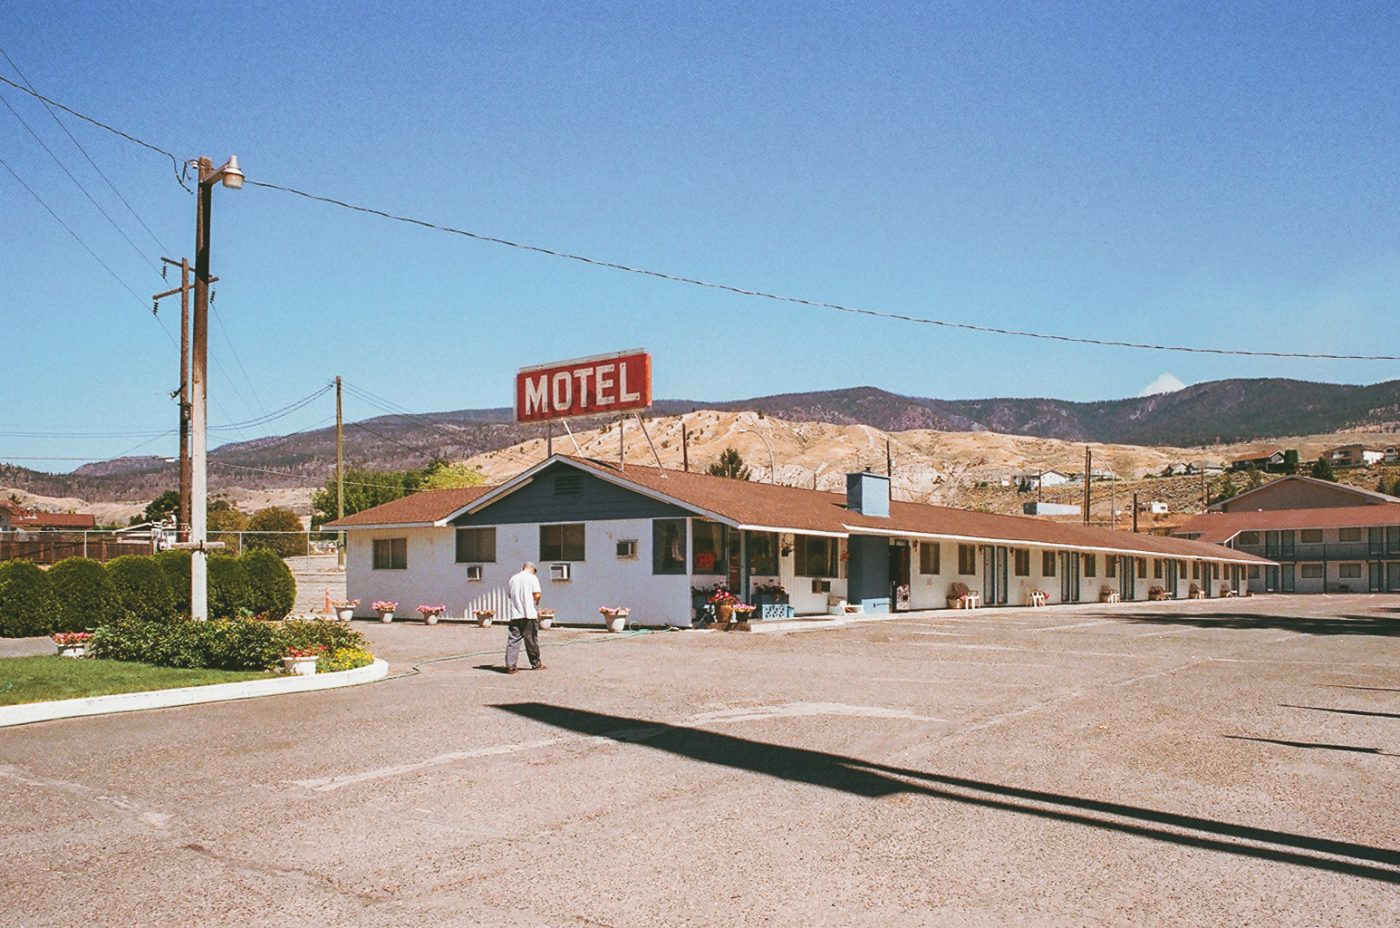 analog photo series on motels in Canada by Sacha Jennis